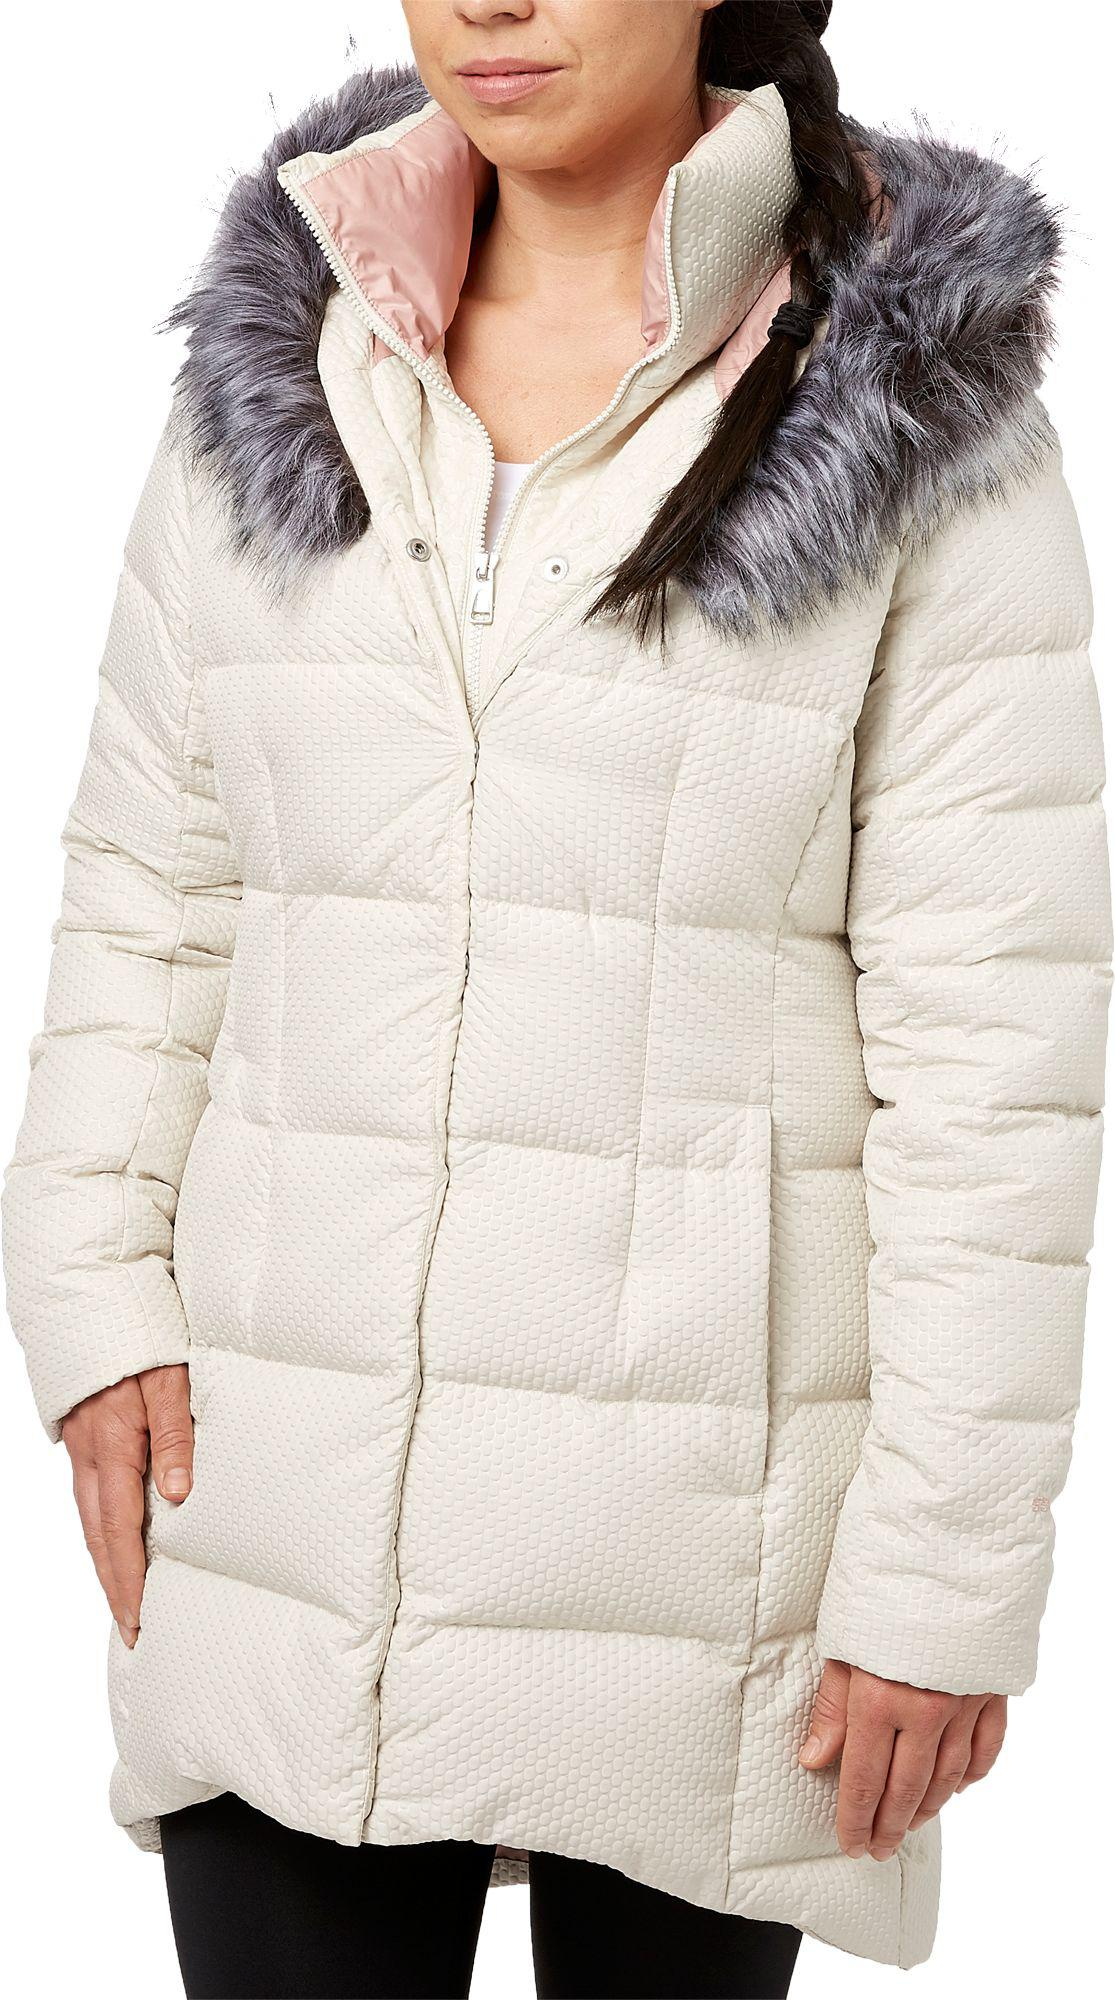 Lyst - The North Face Hey Mama Parkina Insulated Jacket in White ... 34411c337